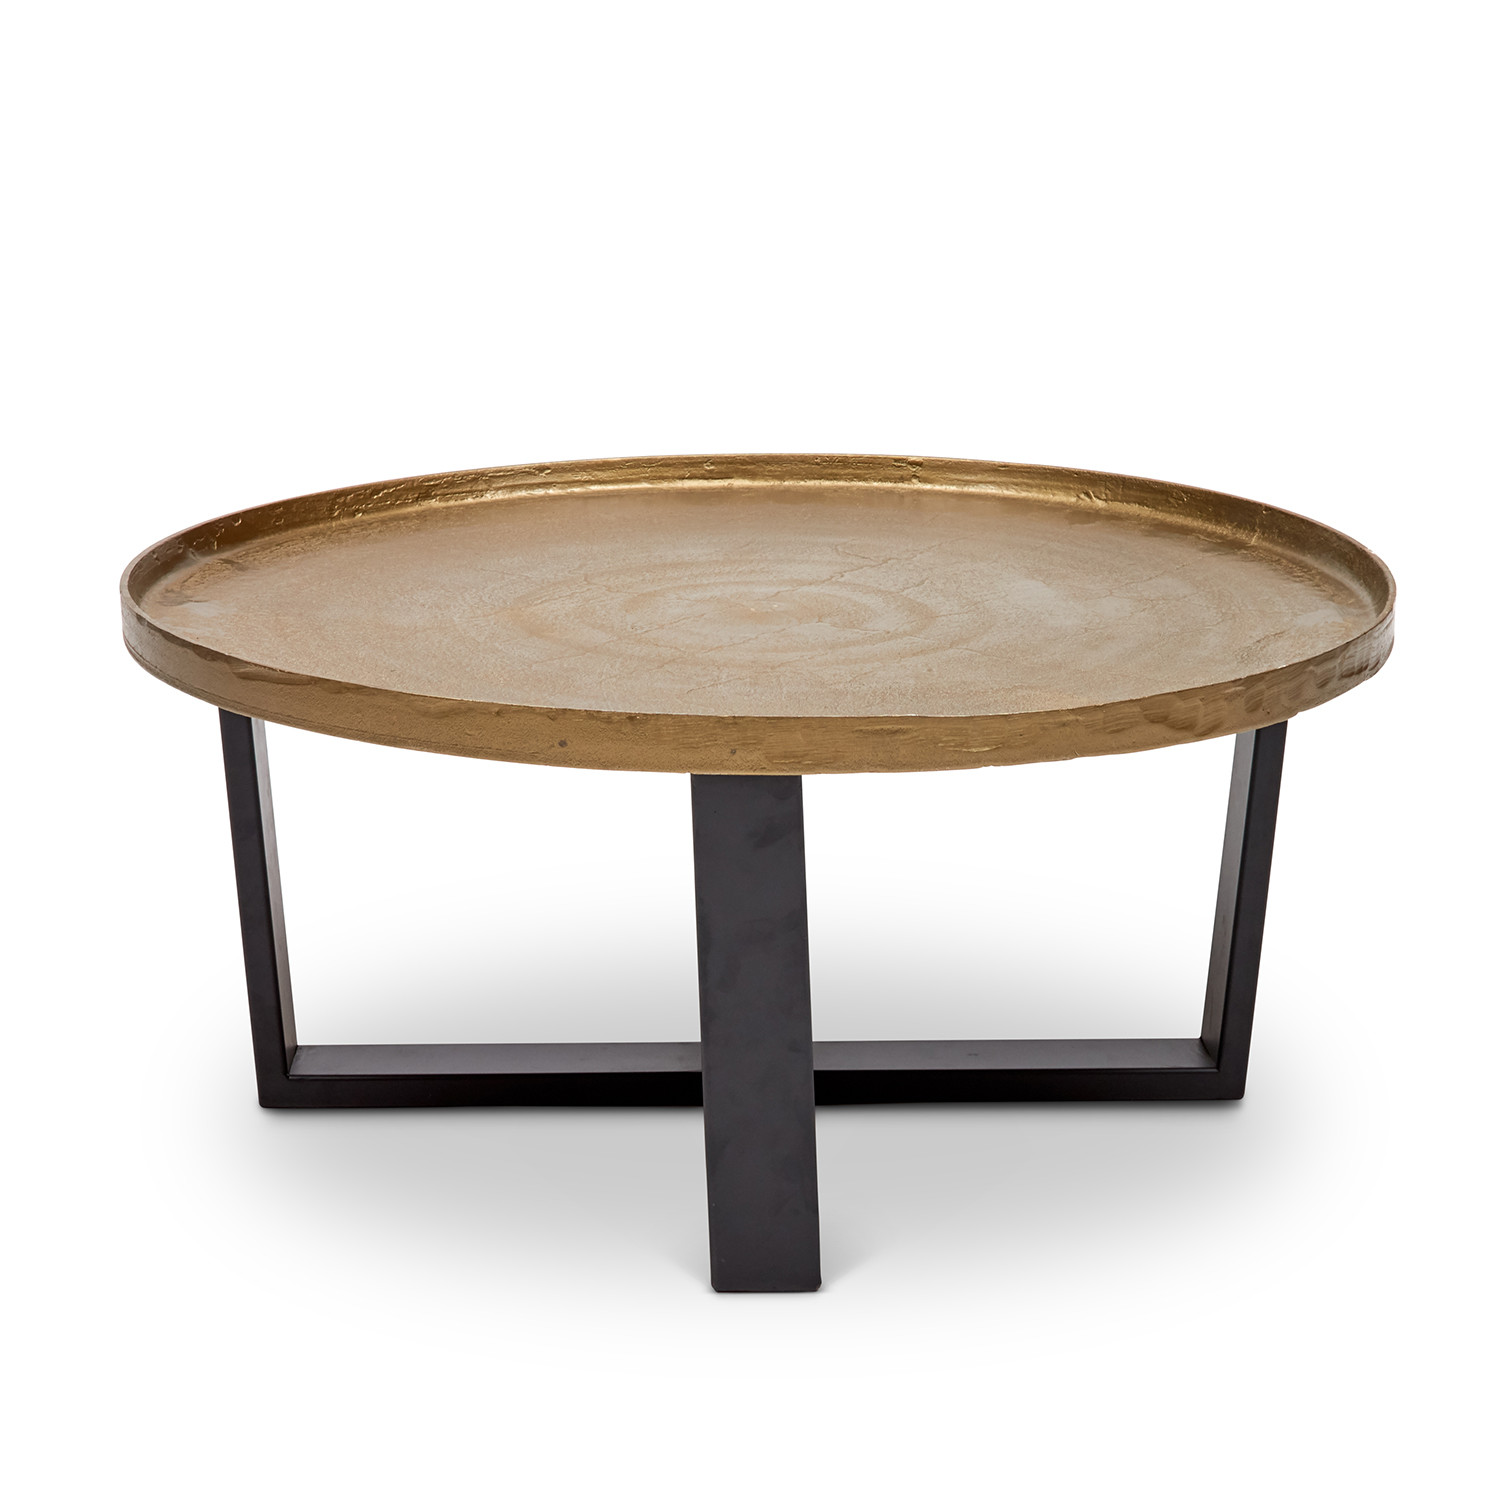 Zara Coffee Table (Antique Brass) - Urbia - Touch of Modern